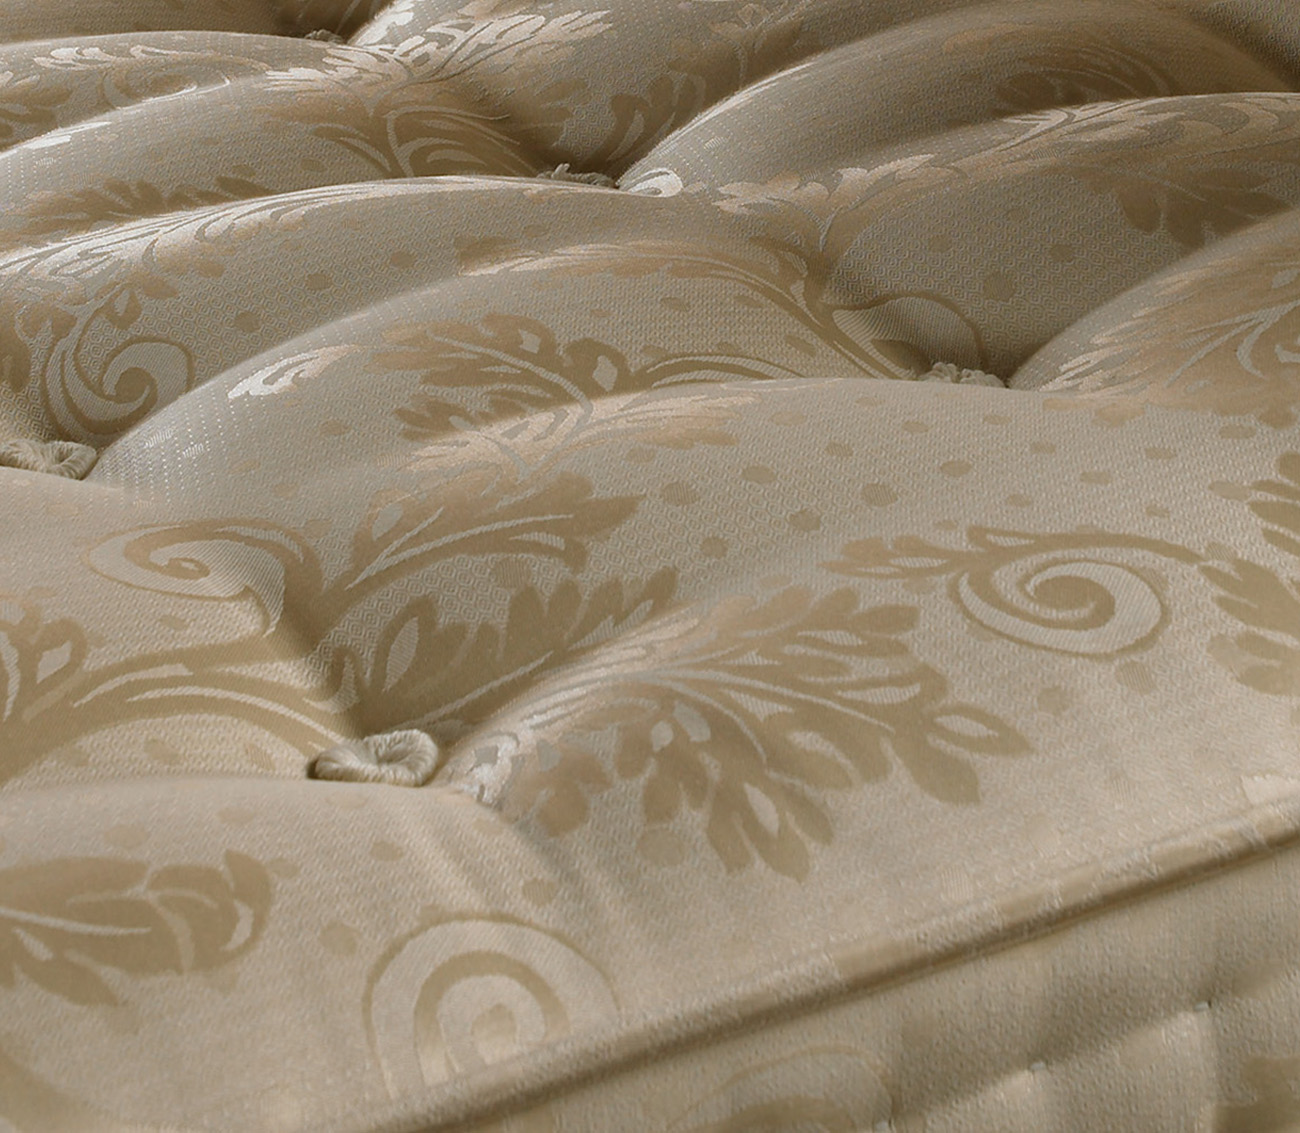 highgrove_affinity_mattress_main_image_